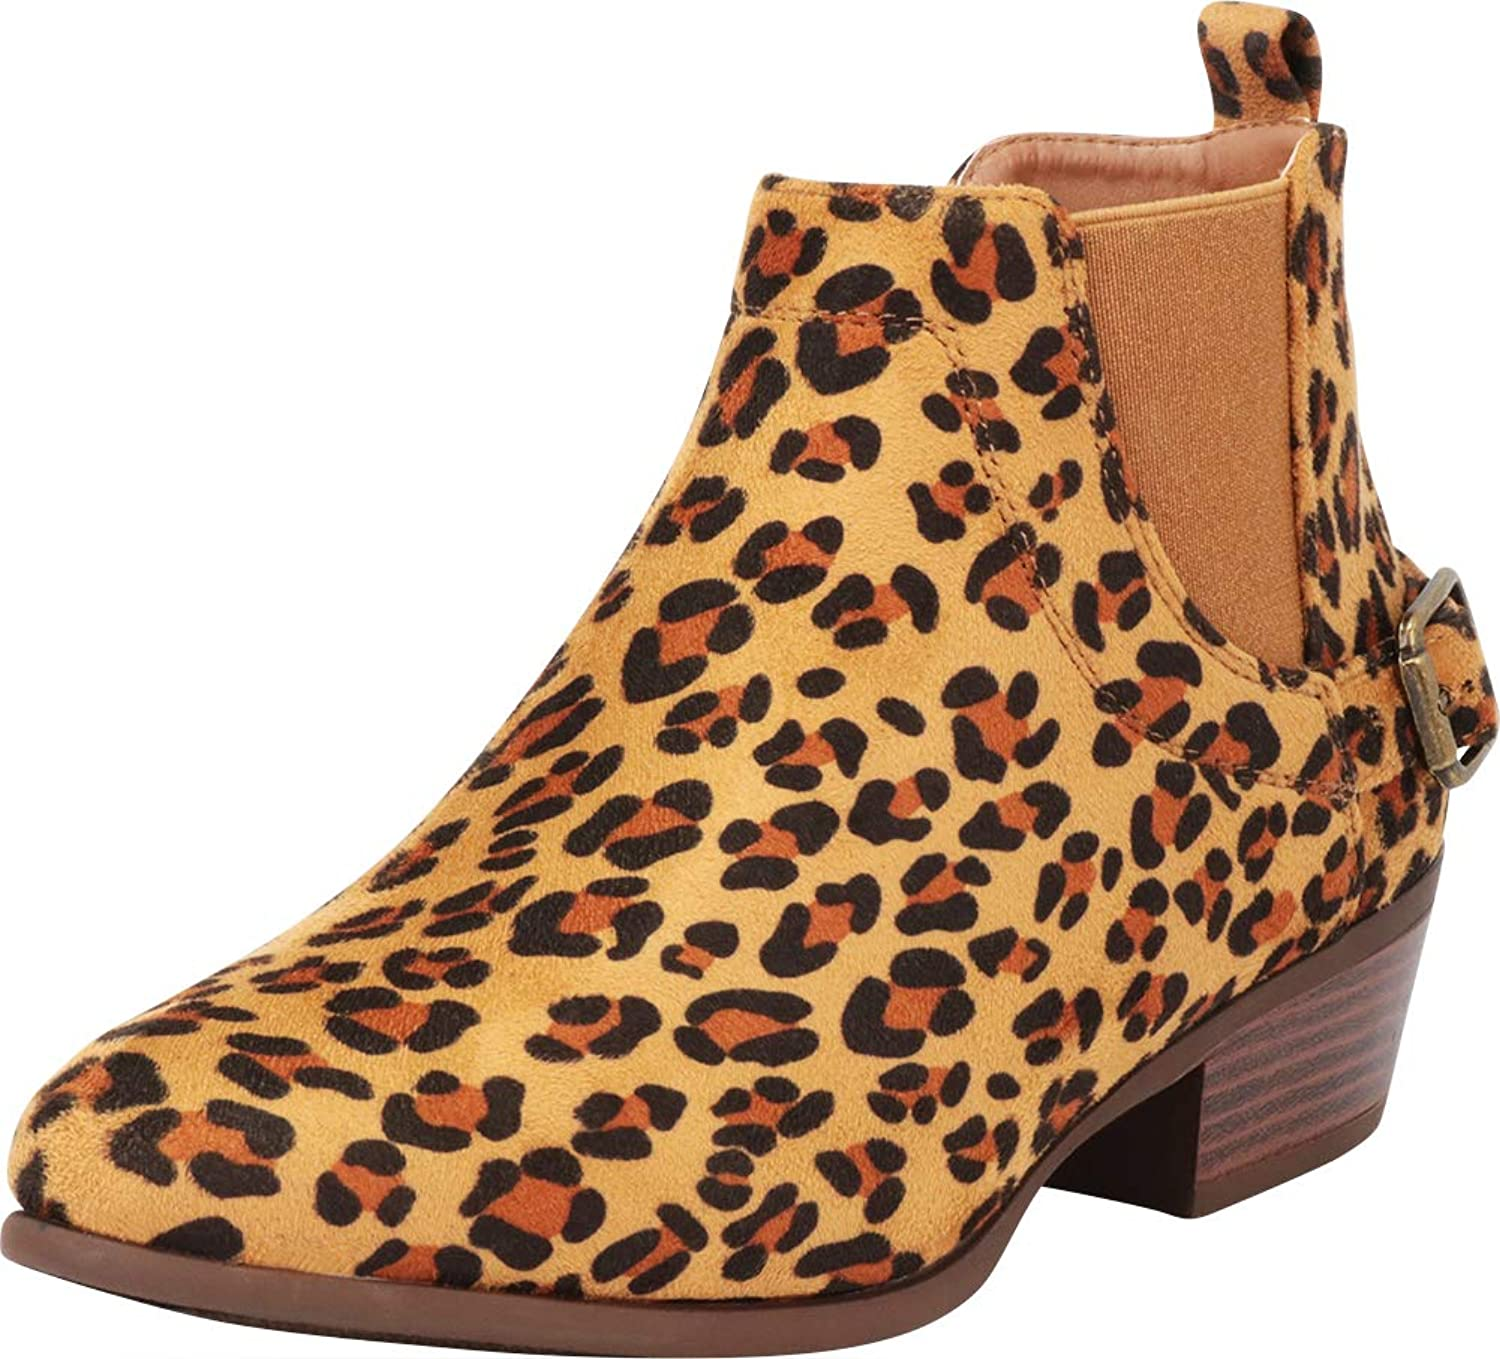 Cambridge Select Women's Chelsea Stretch Buckle Chunky Stacked Heel Ankle Bootie